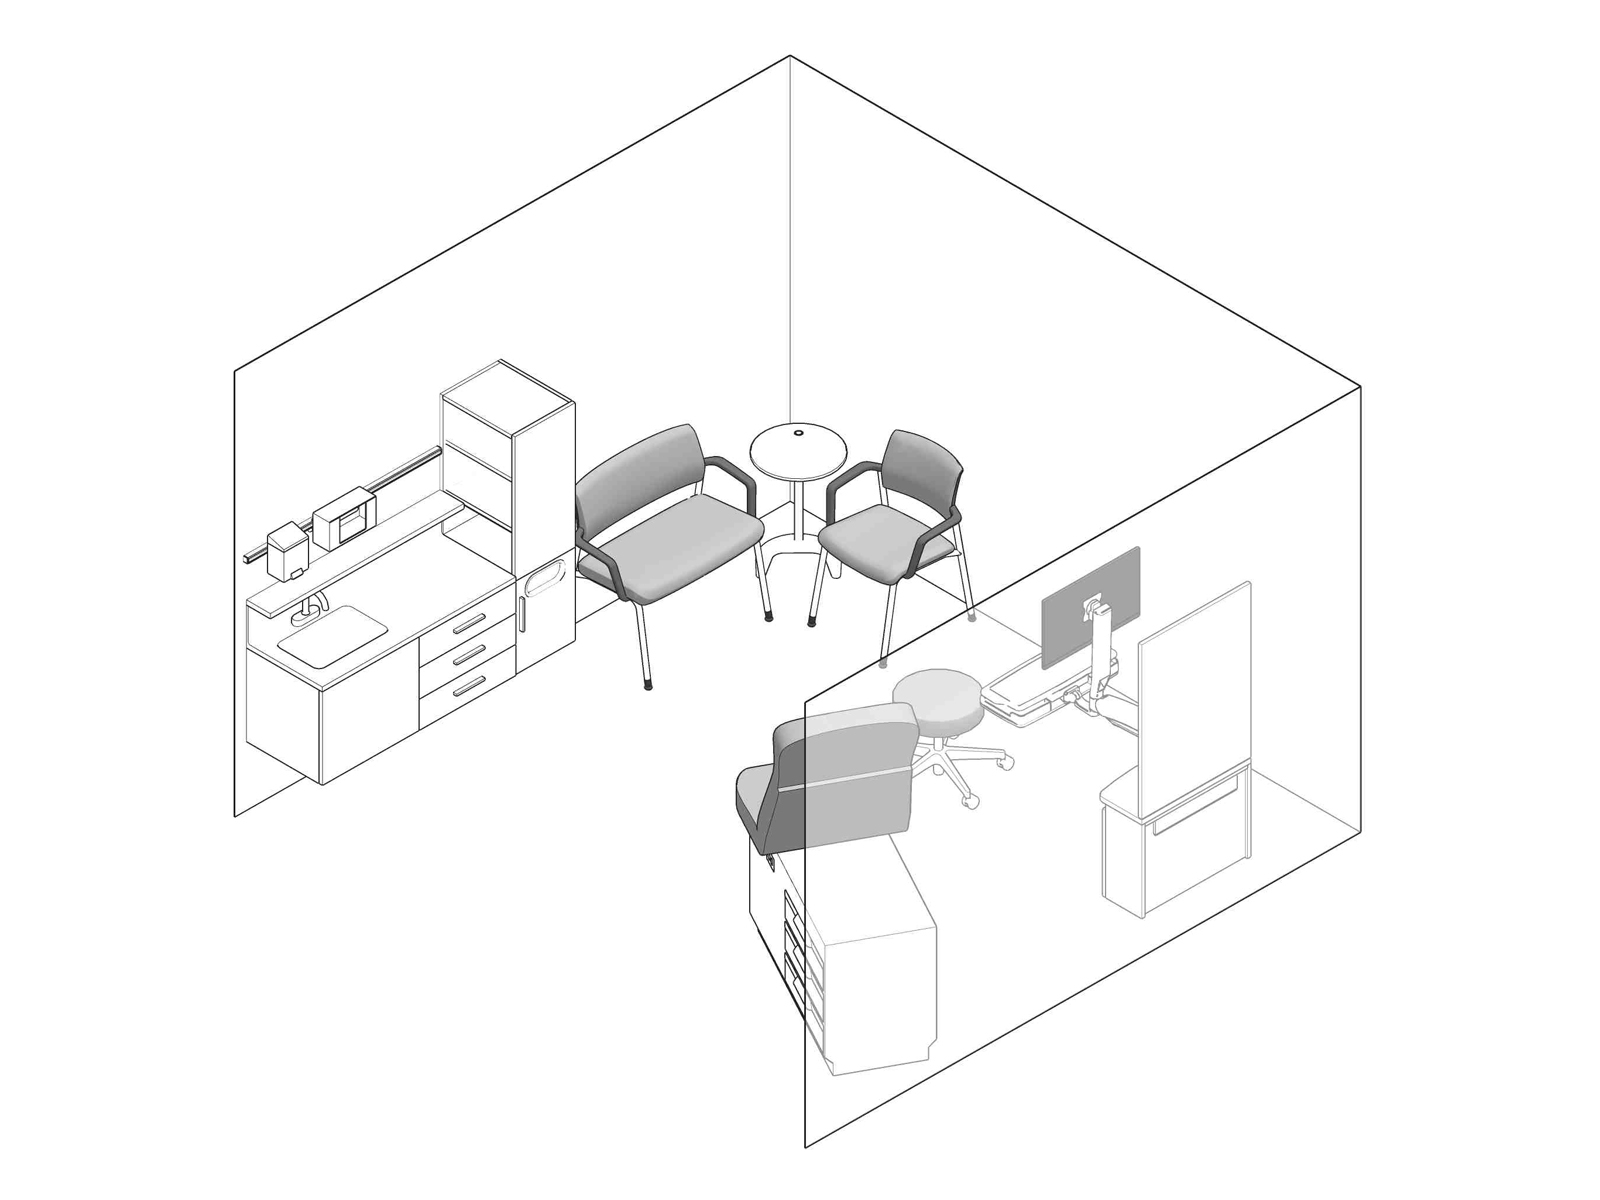 A line drawing - Exam Room 007